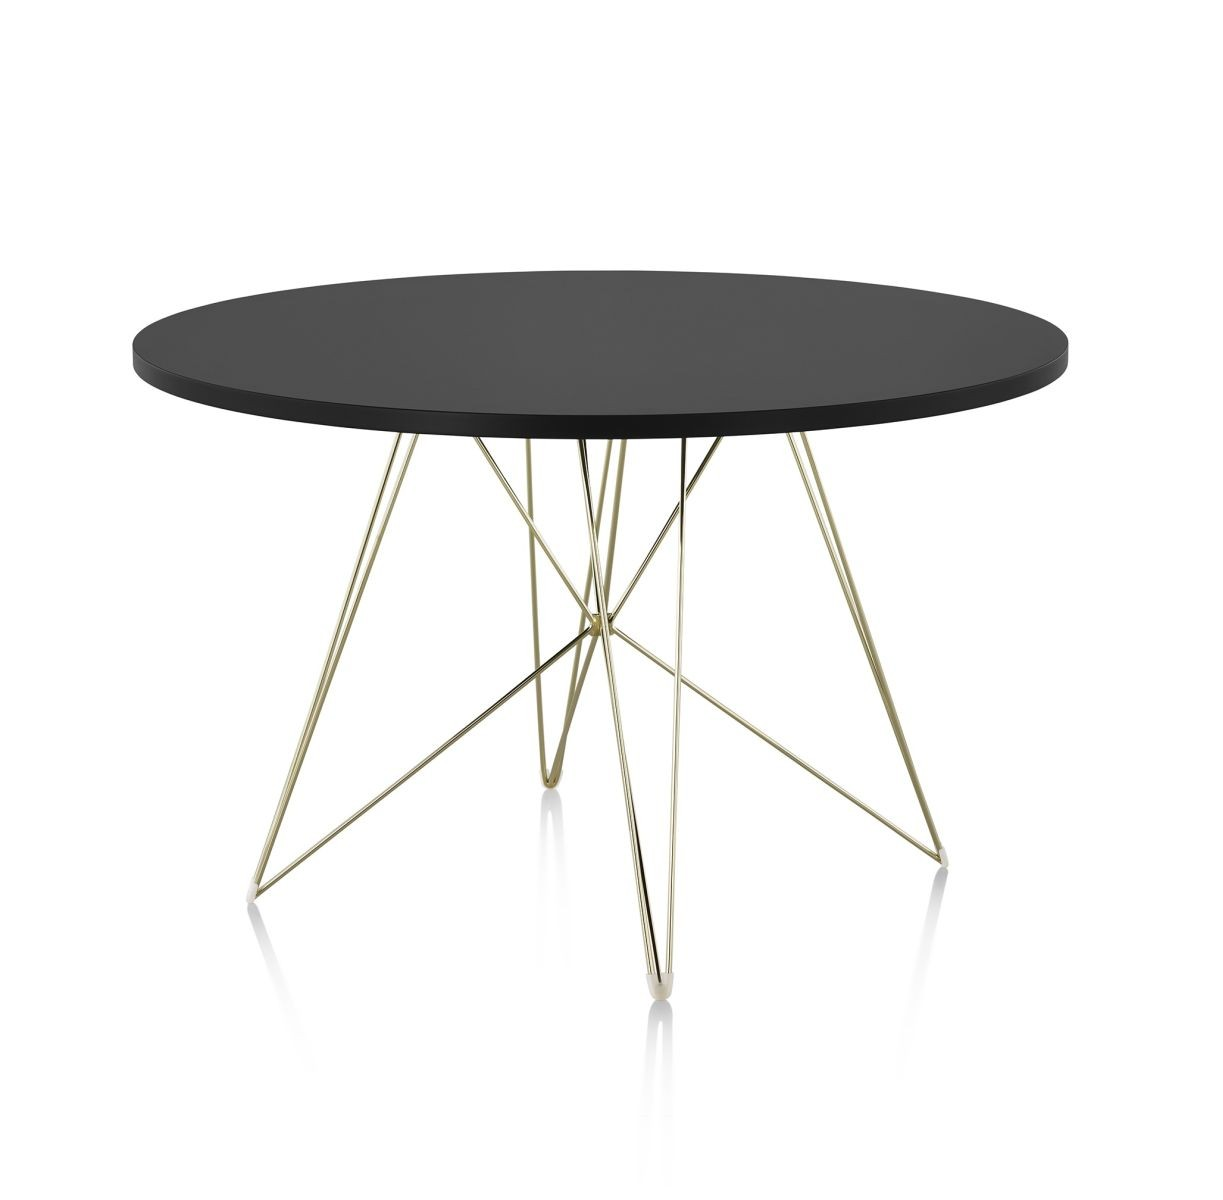 Magis Tavolo XZ3 Table, Round